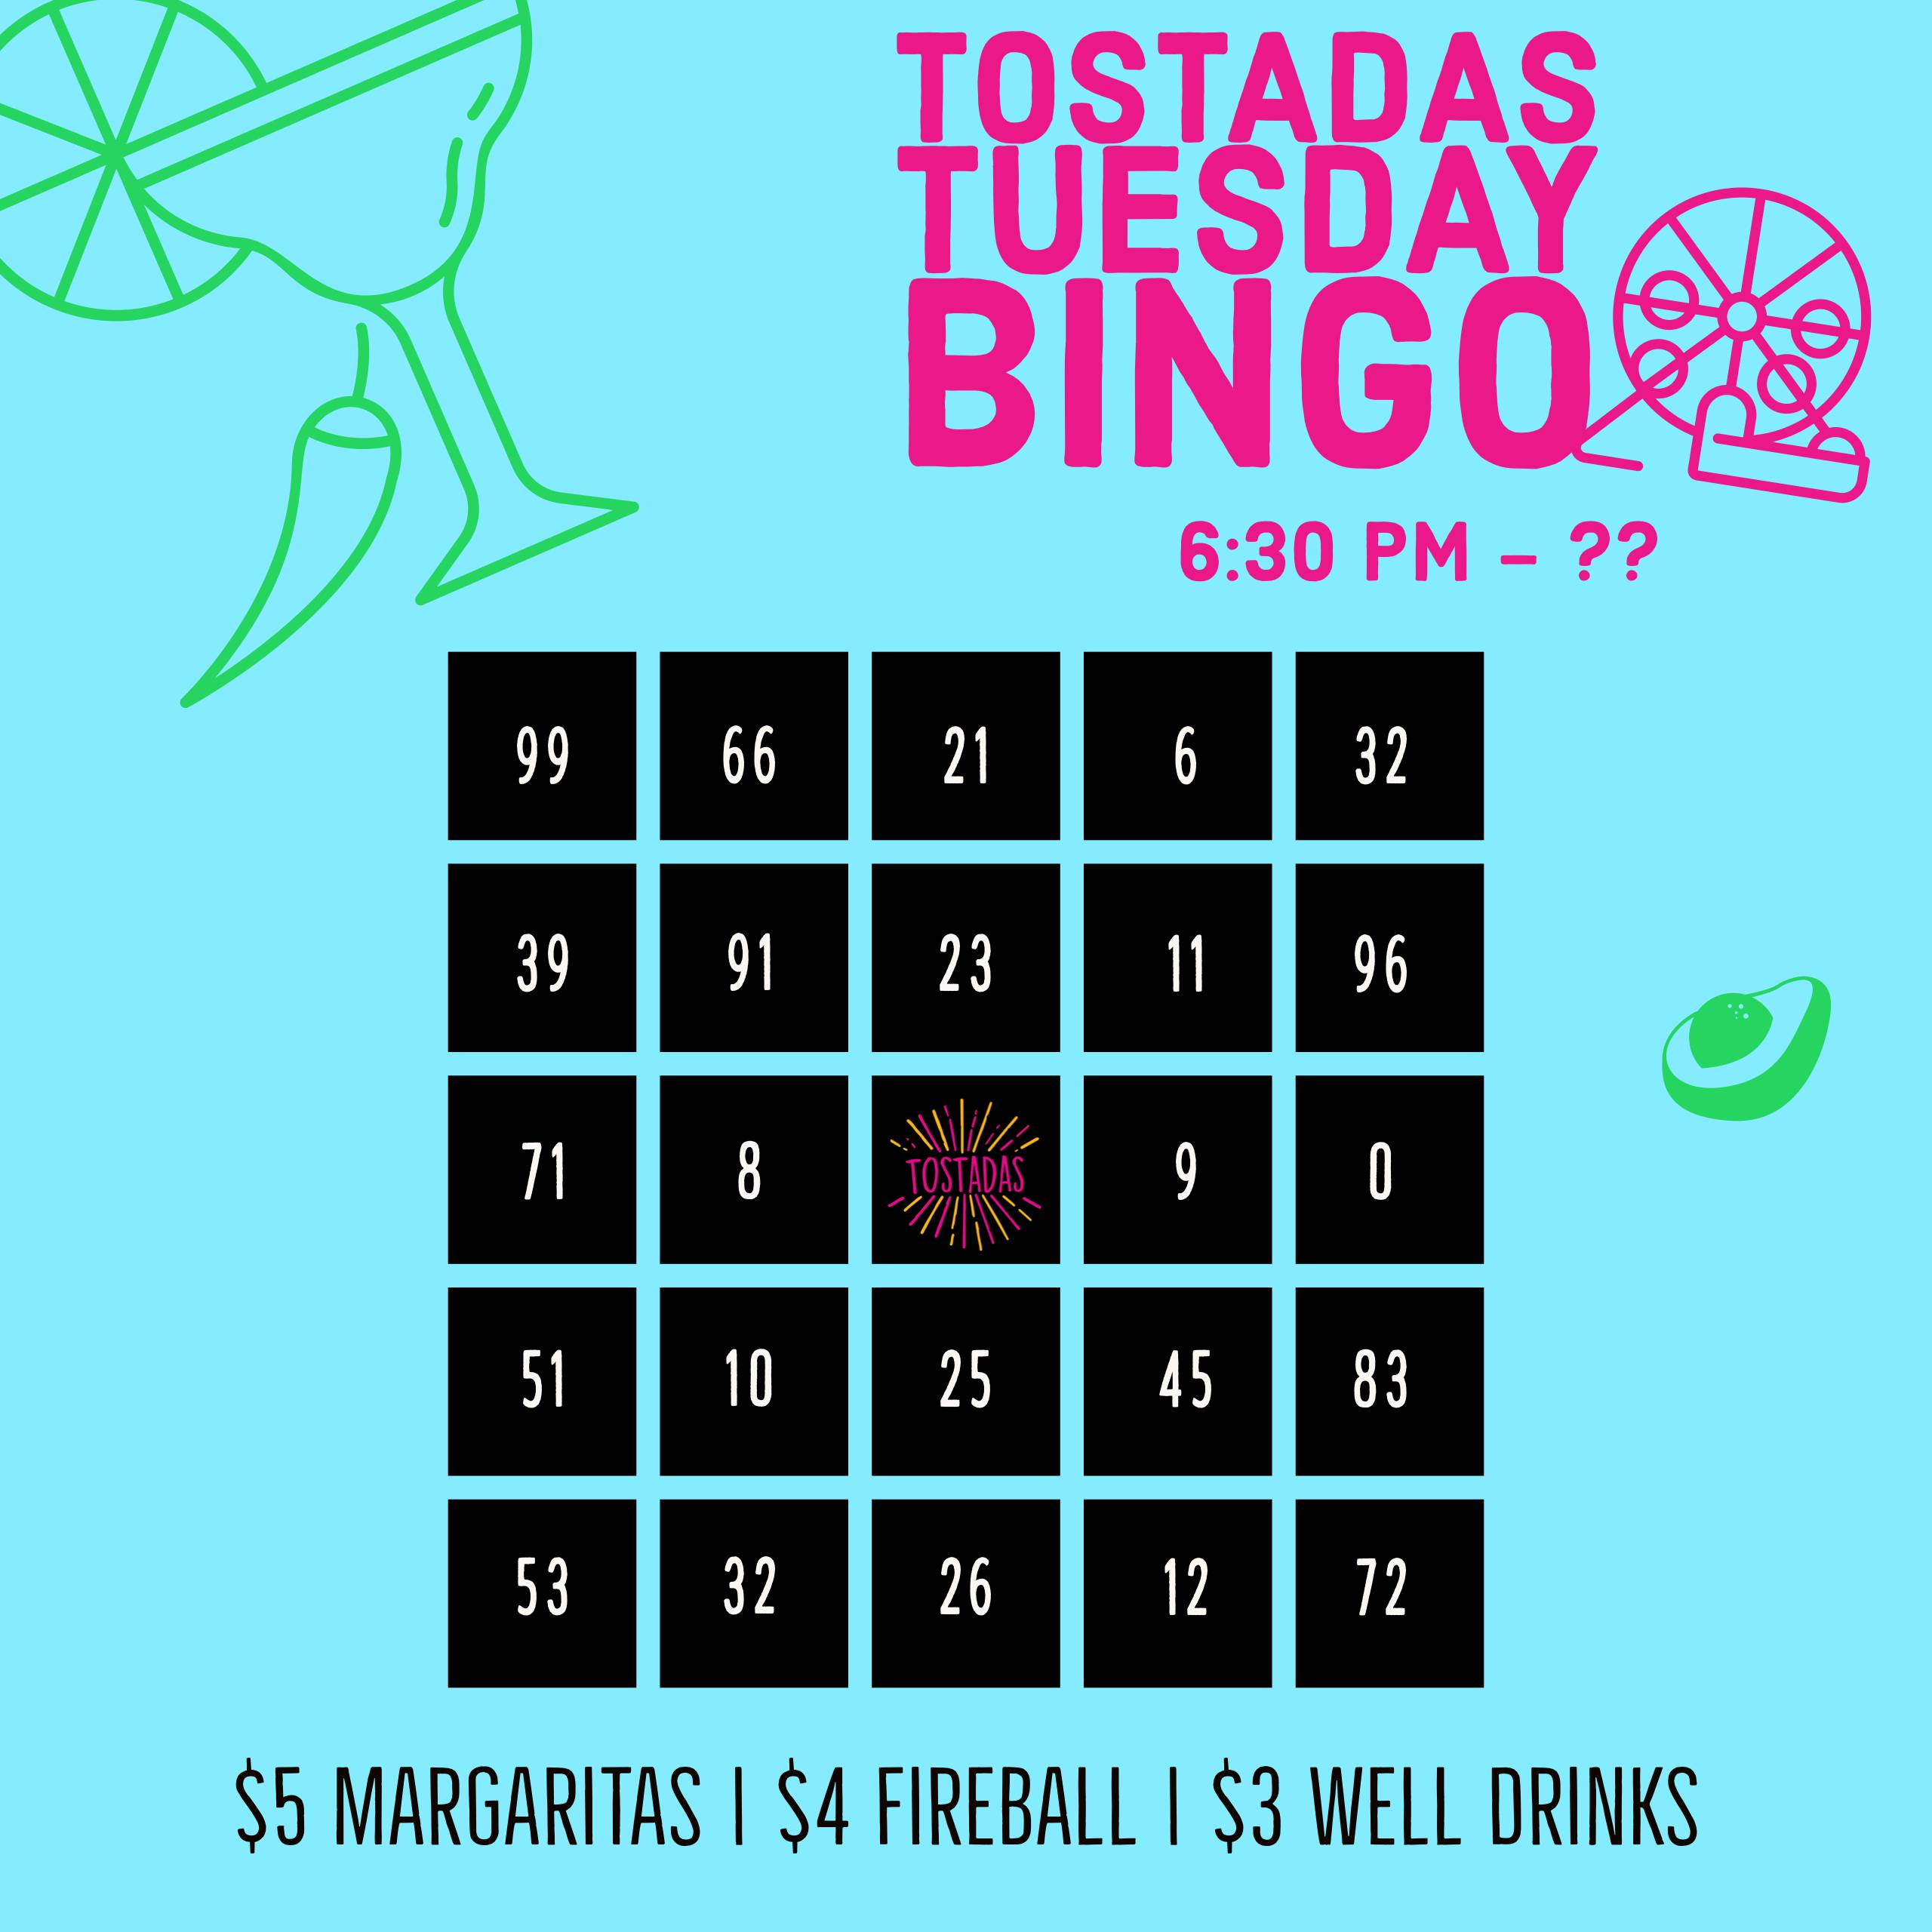 Tuesday Night Bingo at Tostadas!